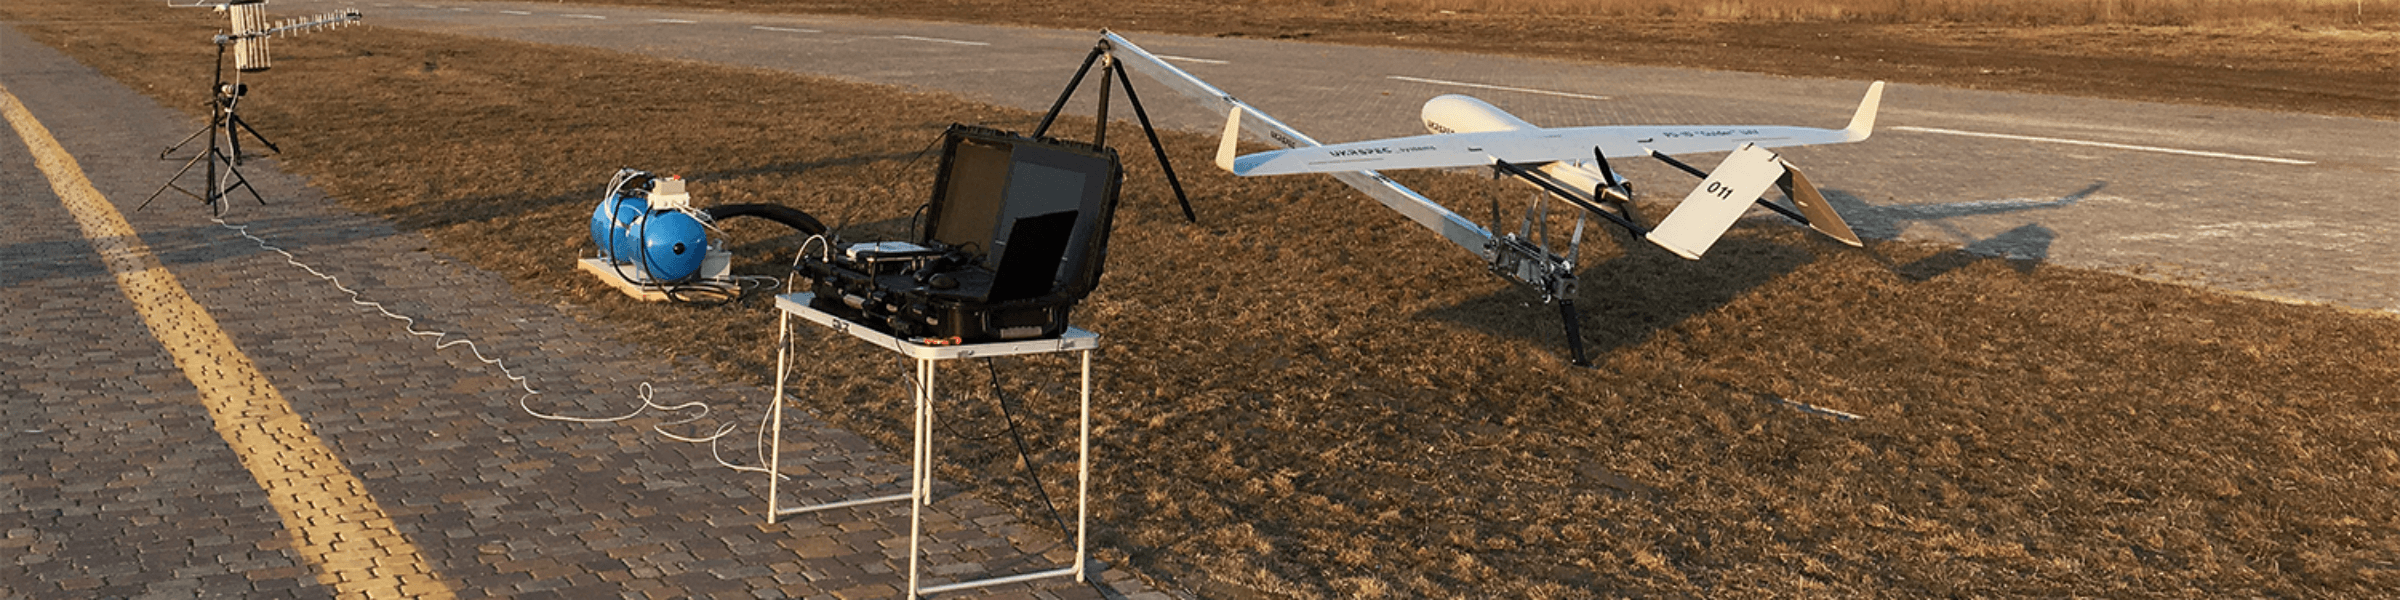 UKR SpecSystems-Drone-Major-Consultancy-Services-Solutions-Hub